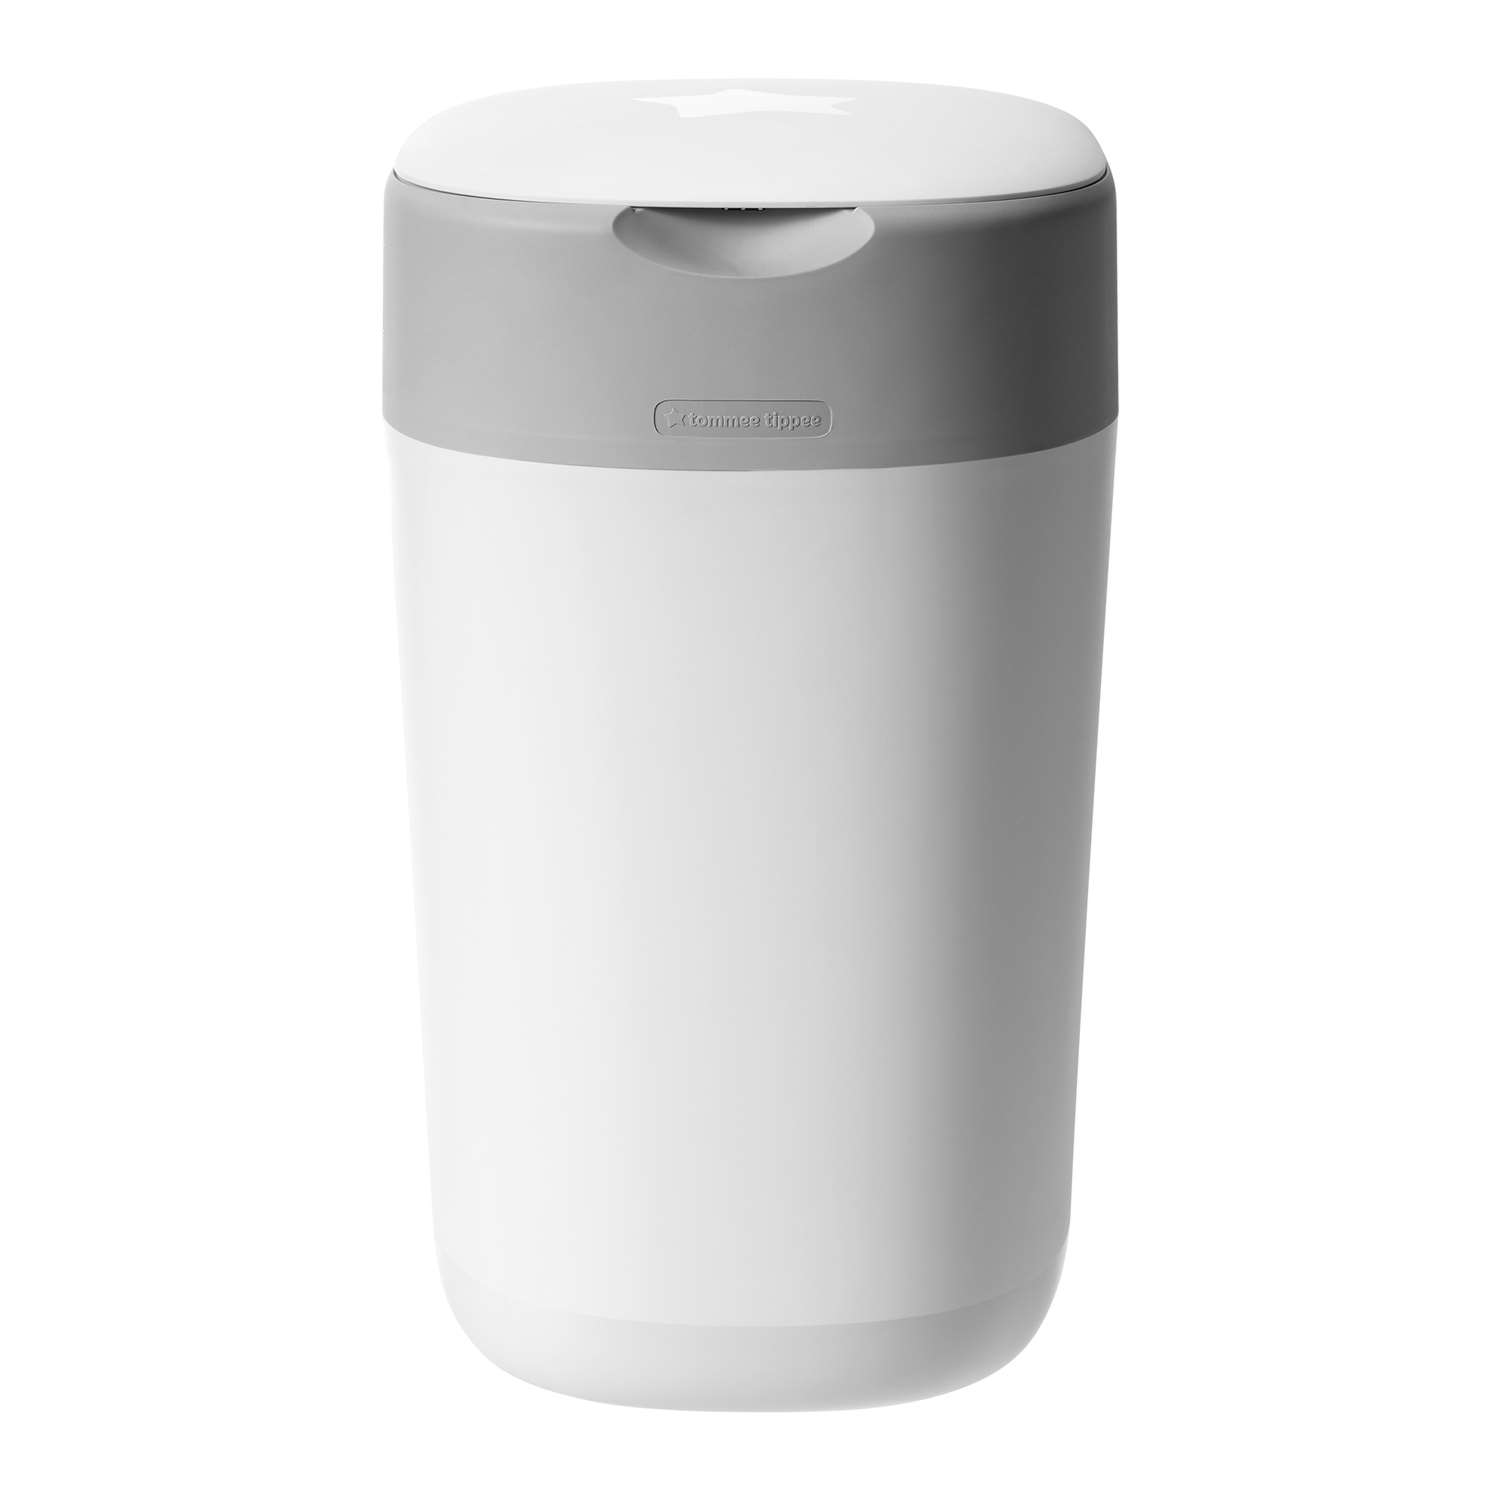 twist_and_click_bin_01_white